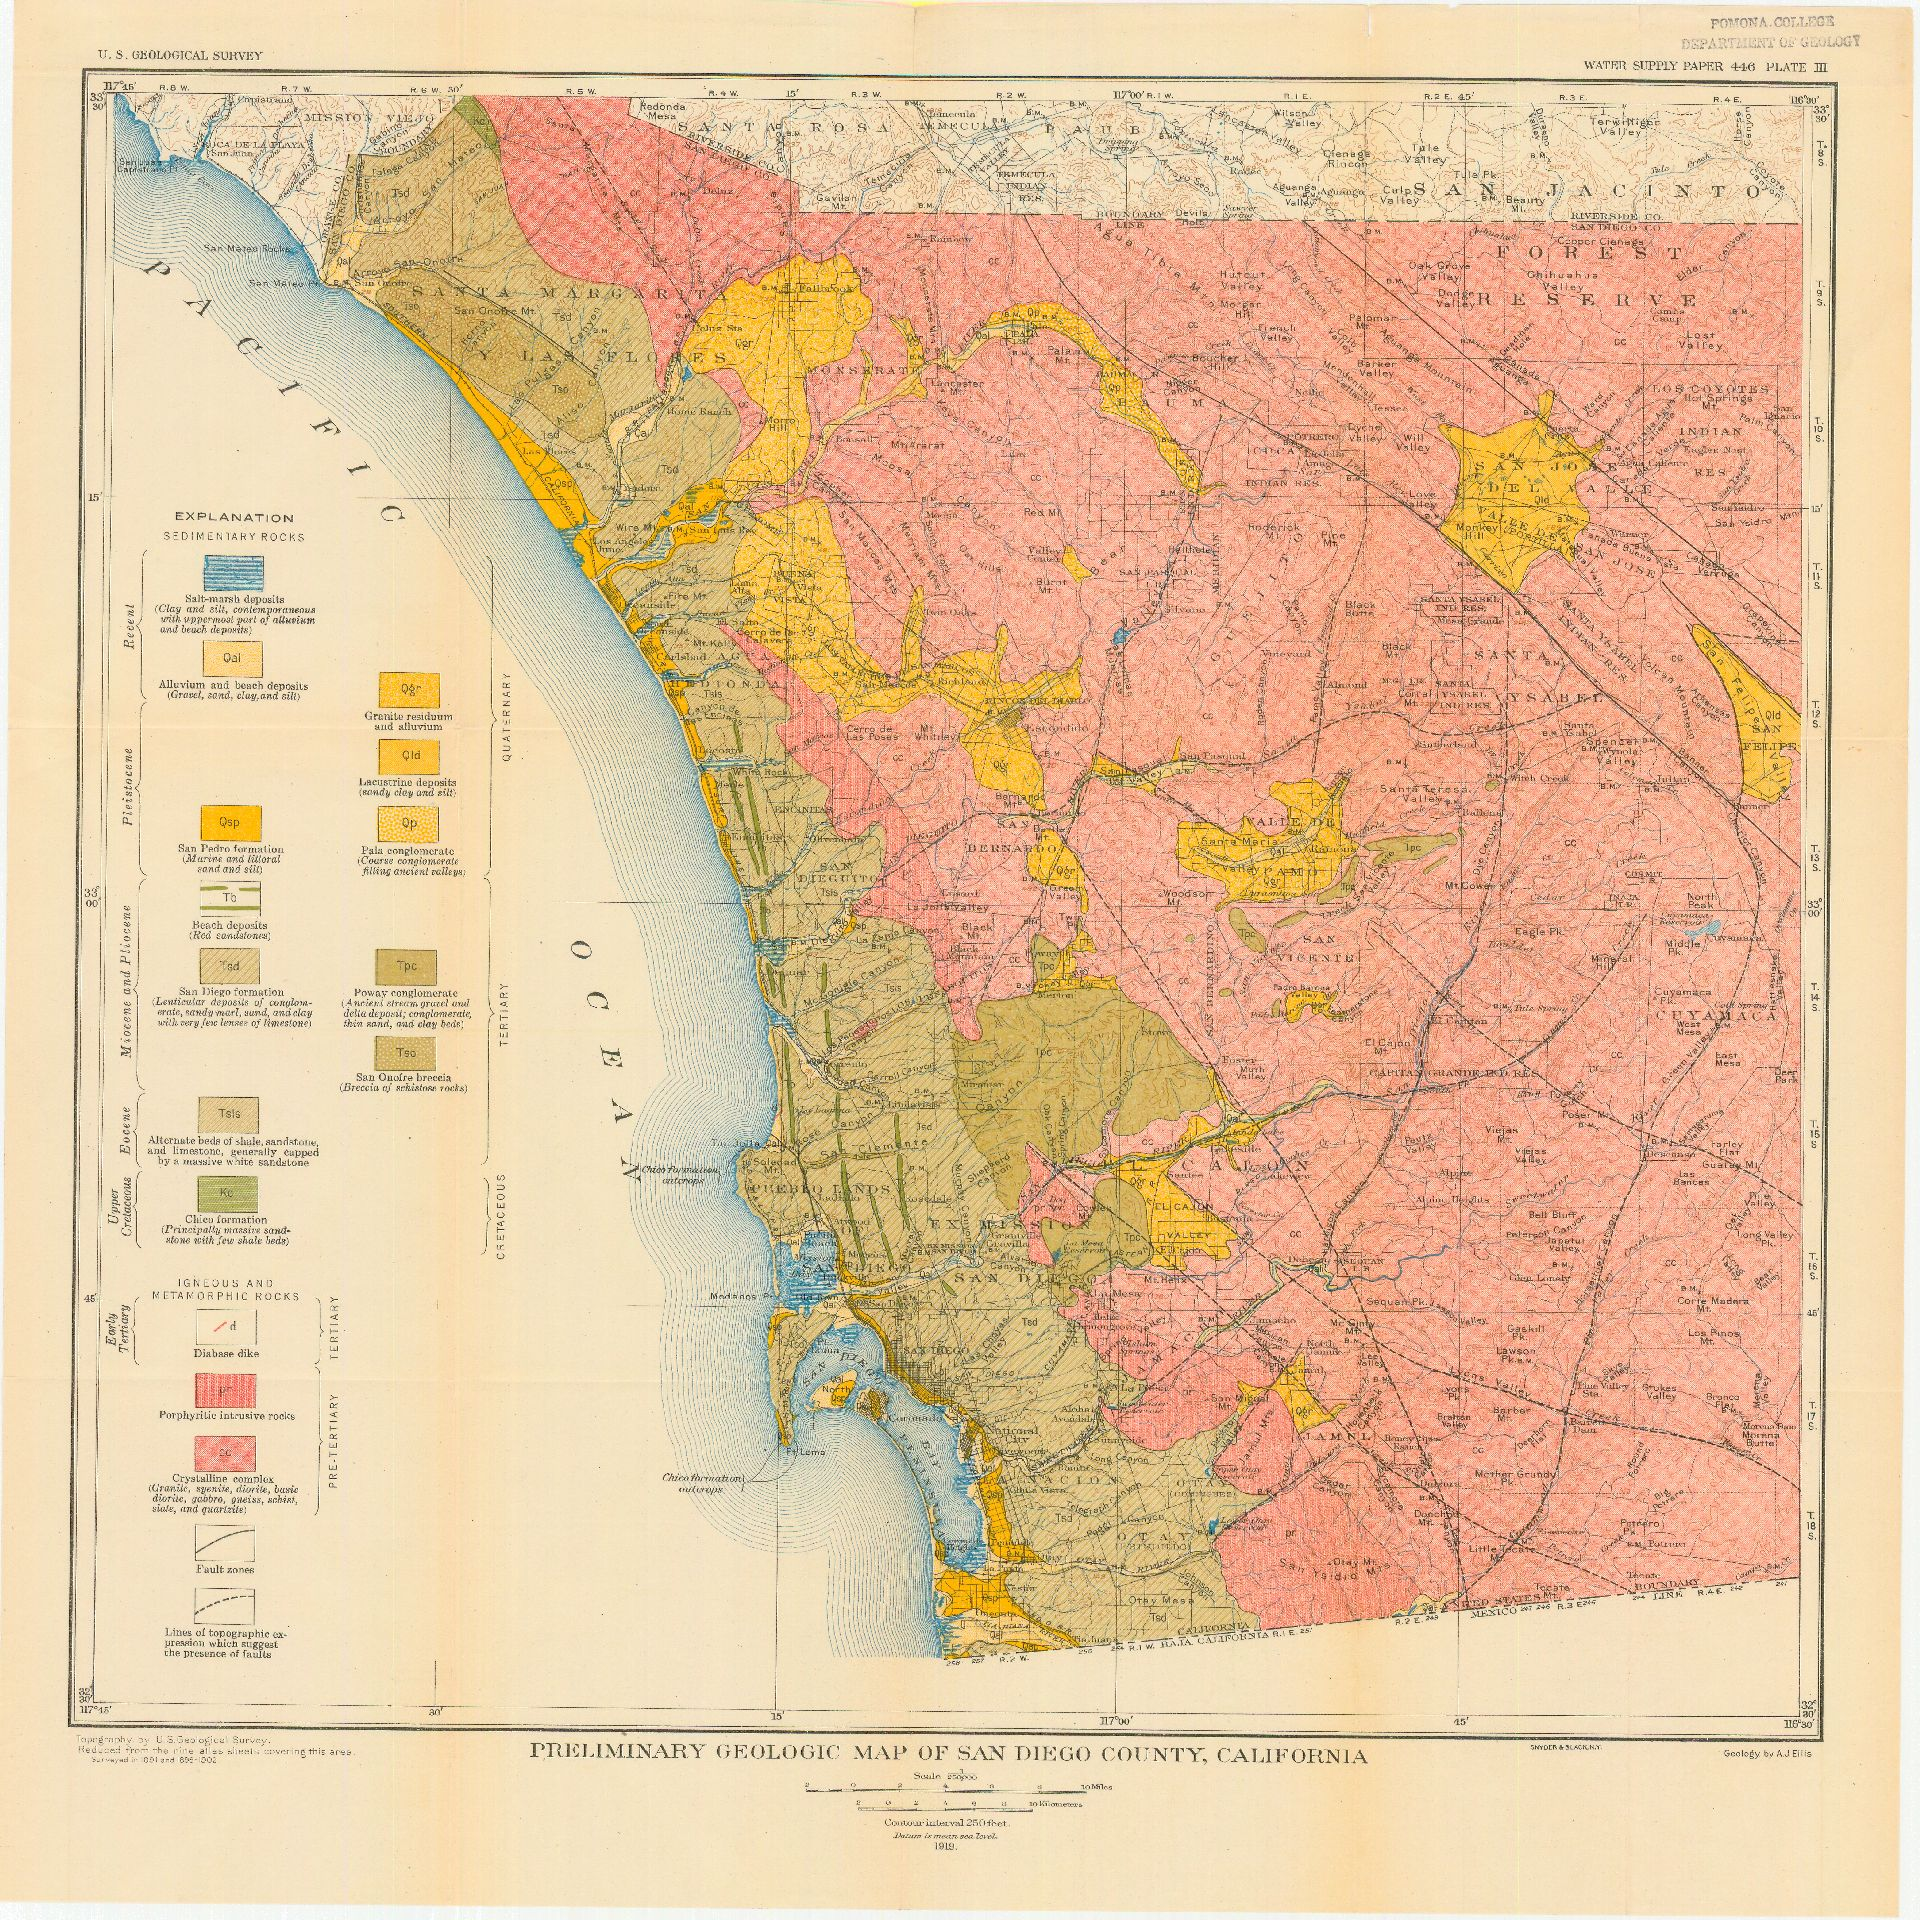 California Map San Diego County.Sdag Online Historical Geological Maps San Diego County